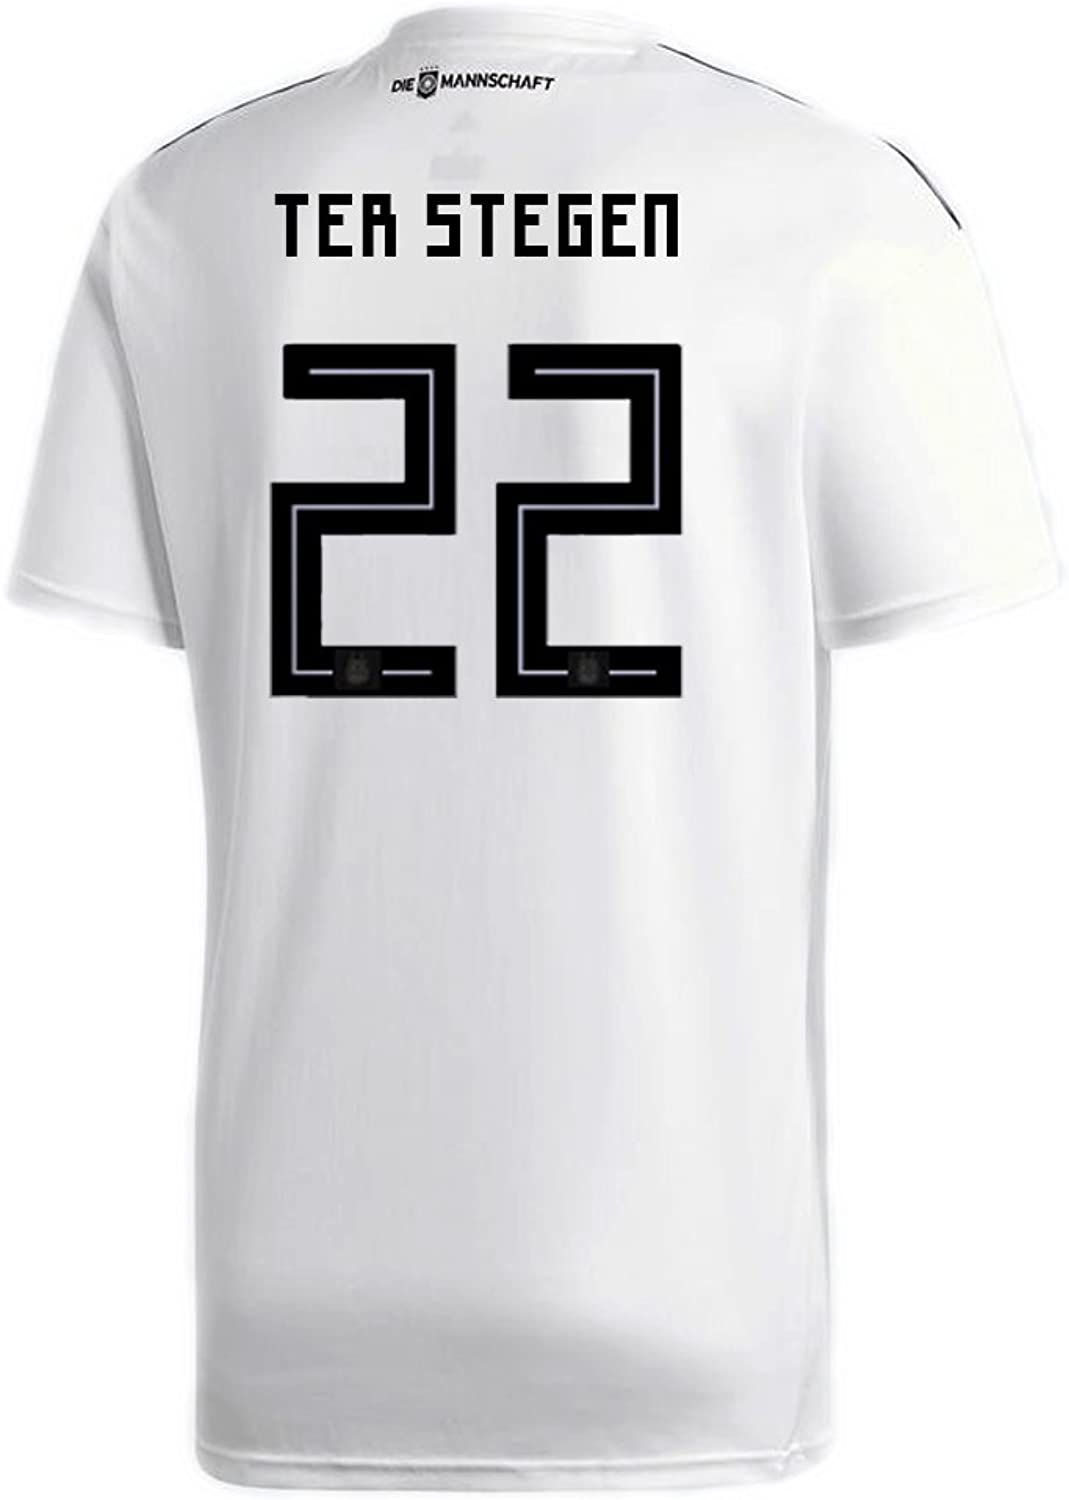 Adidas TER STEGEN   22 Germany Home Soccer Stadium Jersey World Cup Russia 2018